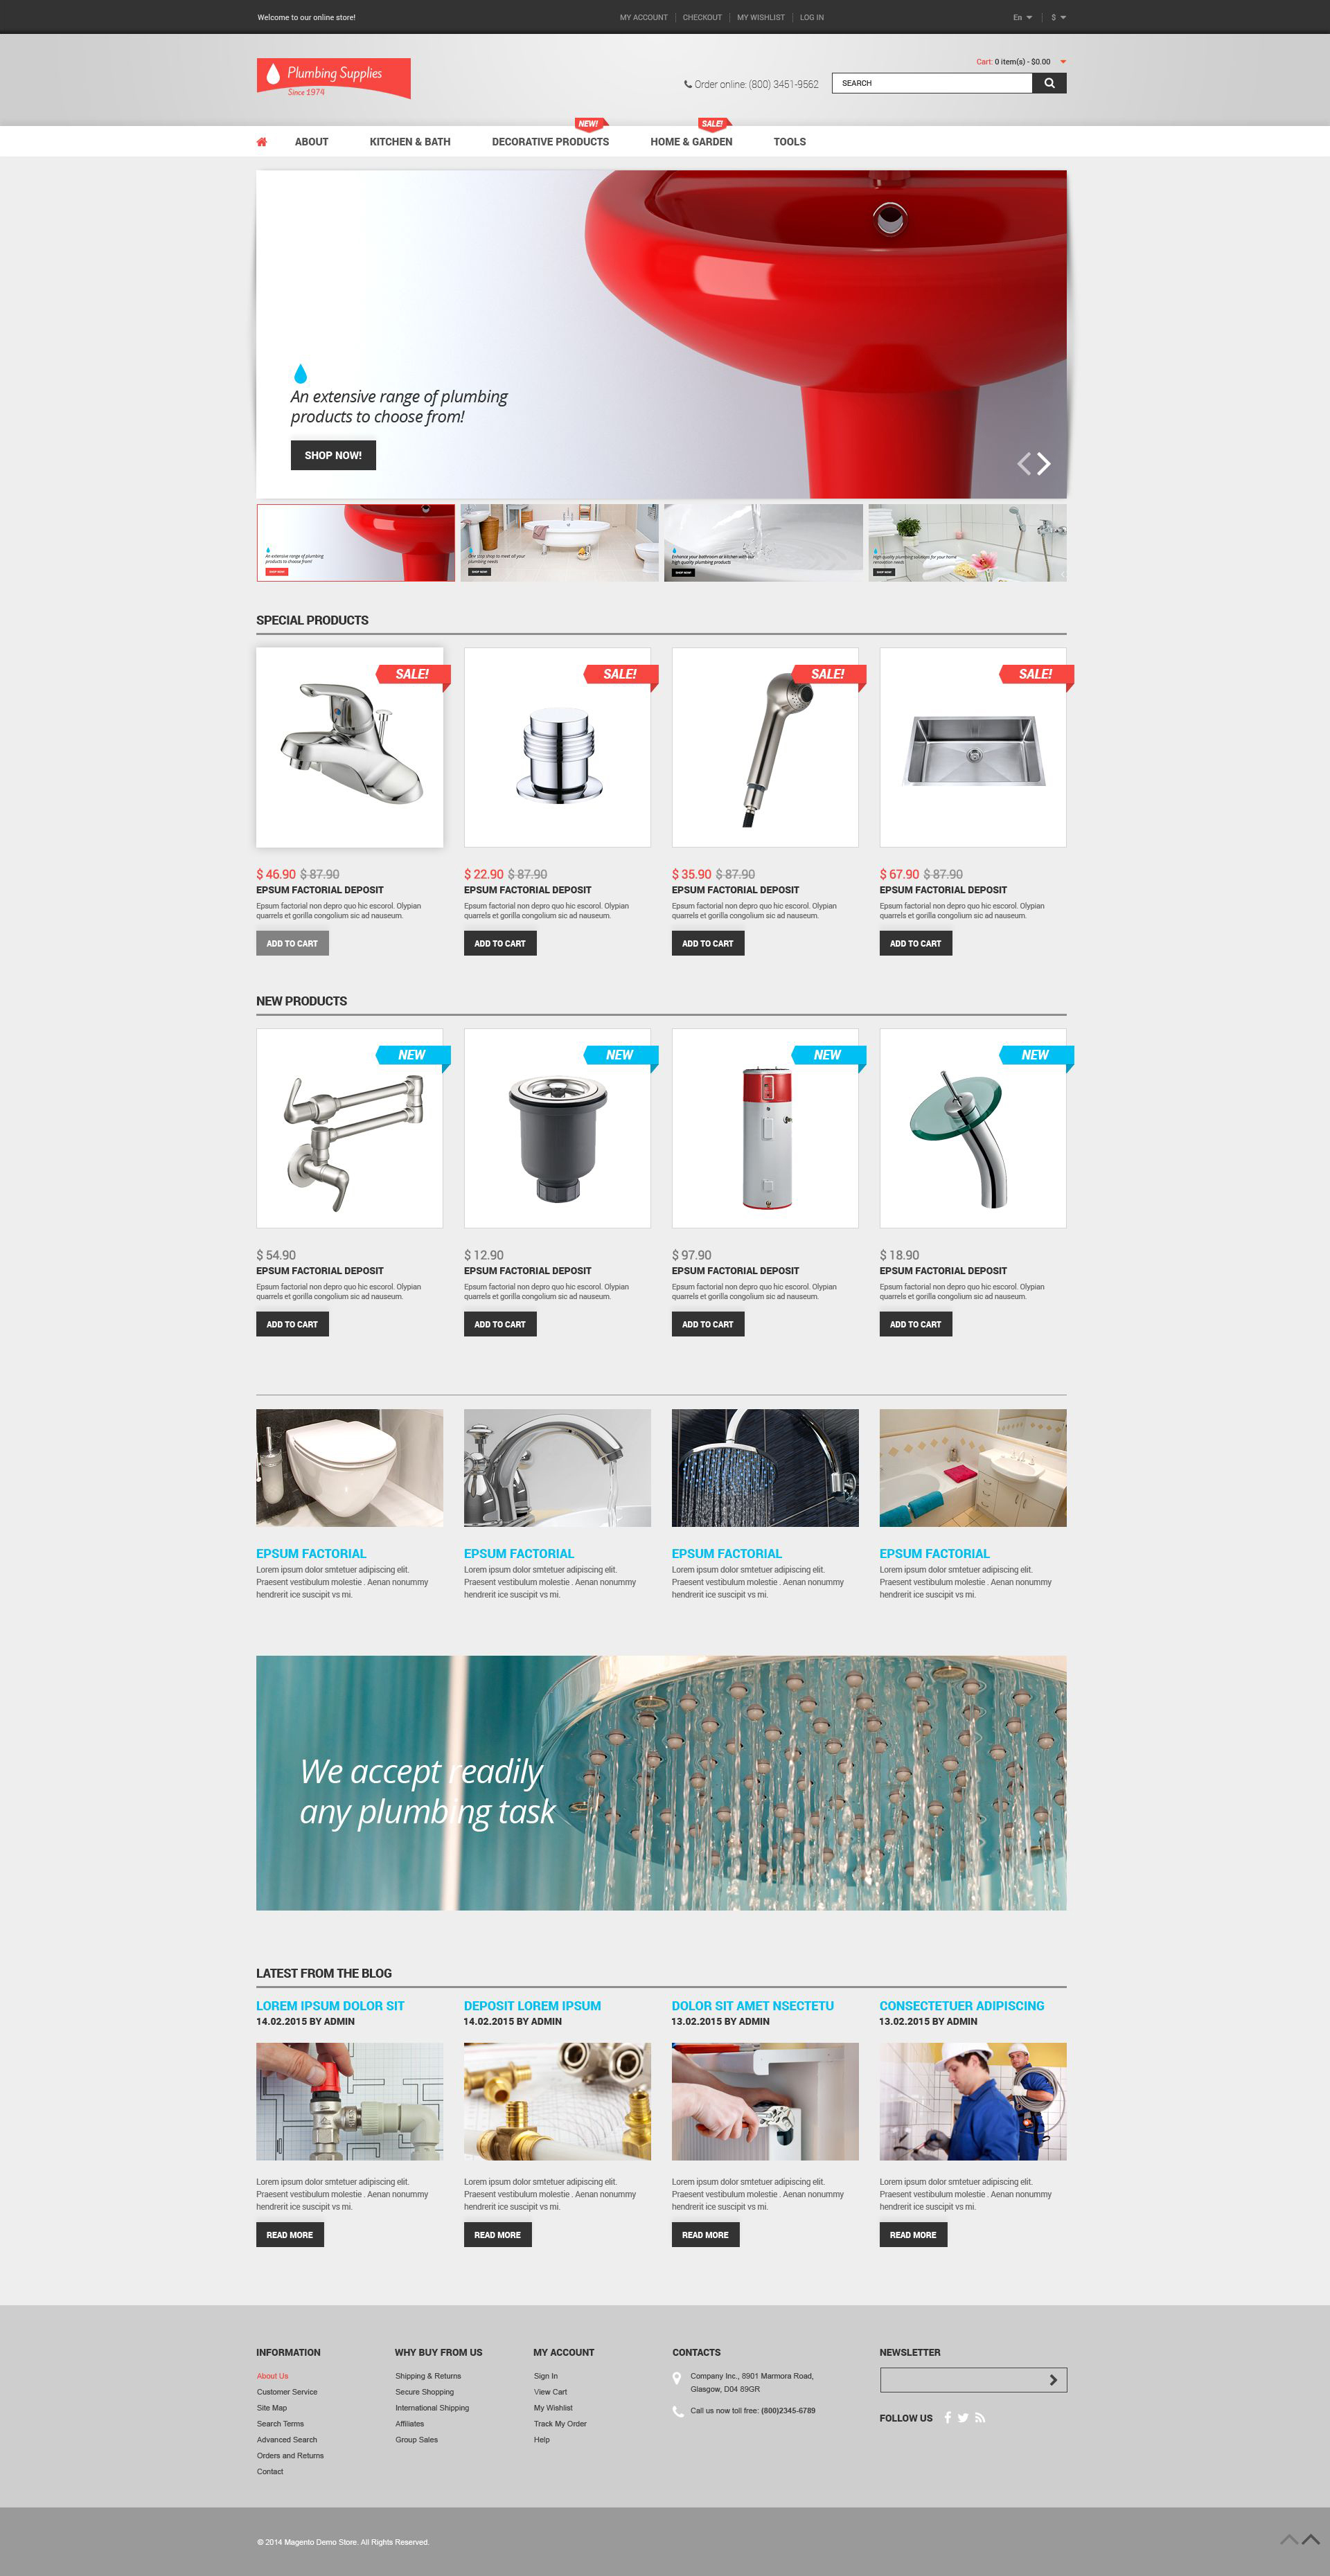 The Plumbing Supplies Company Magento Design 53267, one of the best Magento themes of its kind (most popular, maintenance services), also known as plumbing supplies company Magento template, drain Magento template, heating system Magento template, installation Magento template, preventive Magento template, maintenance Magento template, repair Magento template, spanner Magento template, tools Magento template, soil-pipe Magento template, sewer Magento template, stand-pipe Magento template, tap Magento template, stop-cock Magento template, faucet Magento template, sewer Magento template, sink Magento template, wash-bowl Magento template, employment Magento template, staff Magento template, master Magento template, plumber Magento template, tips Magento template, hint Magento template, standard Magento template, offer Magento template, experience Magento template, special expert and related with plumbing supplies company, drain, heating system, installation, preventive, maintenance, repair, spanner, tools, soil-pipe, sewer, stand-pipe, tap, stop-cock, faucet, sewer, sink, wash-bowl, employment, staff, master, plumber, tips, hint, standard, offer, experience, special expert, etc.